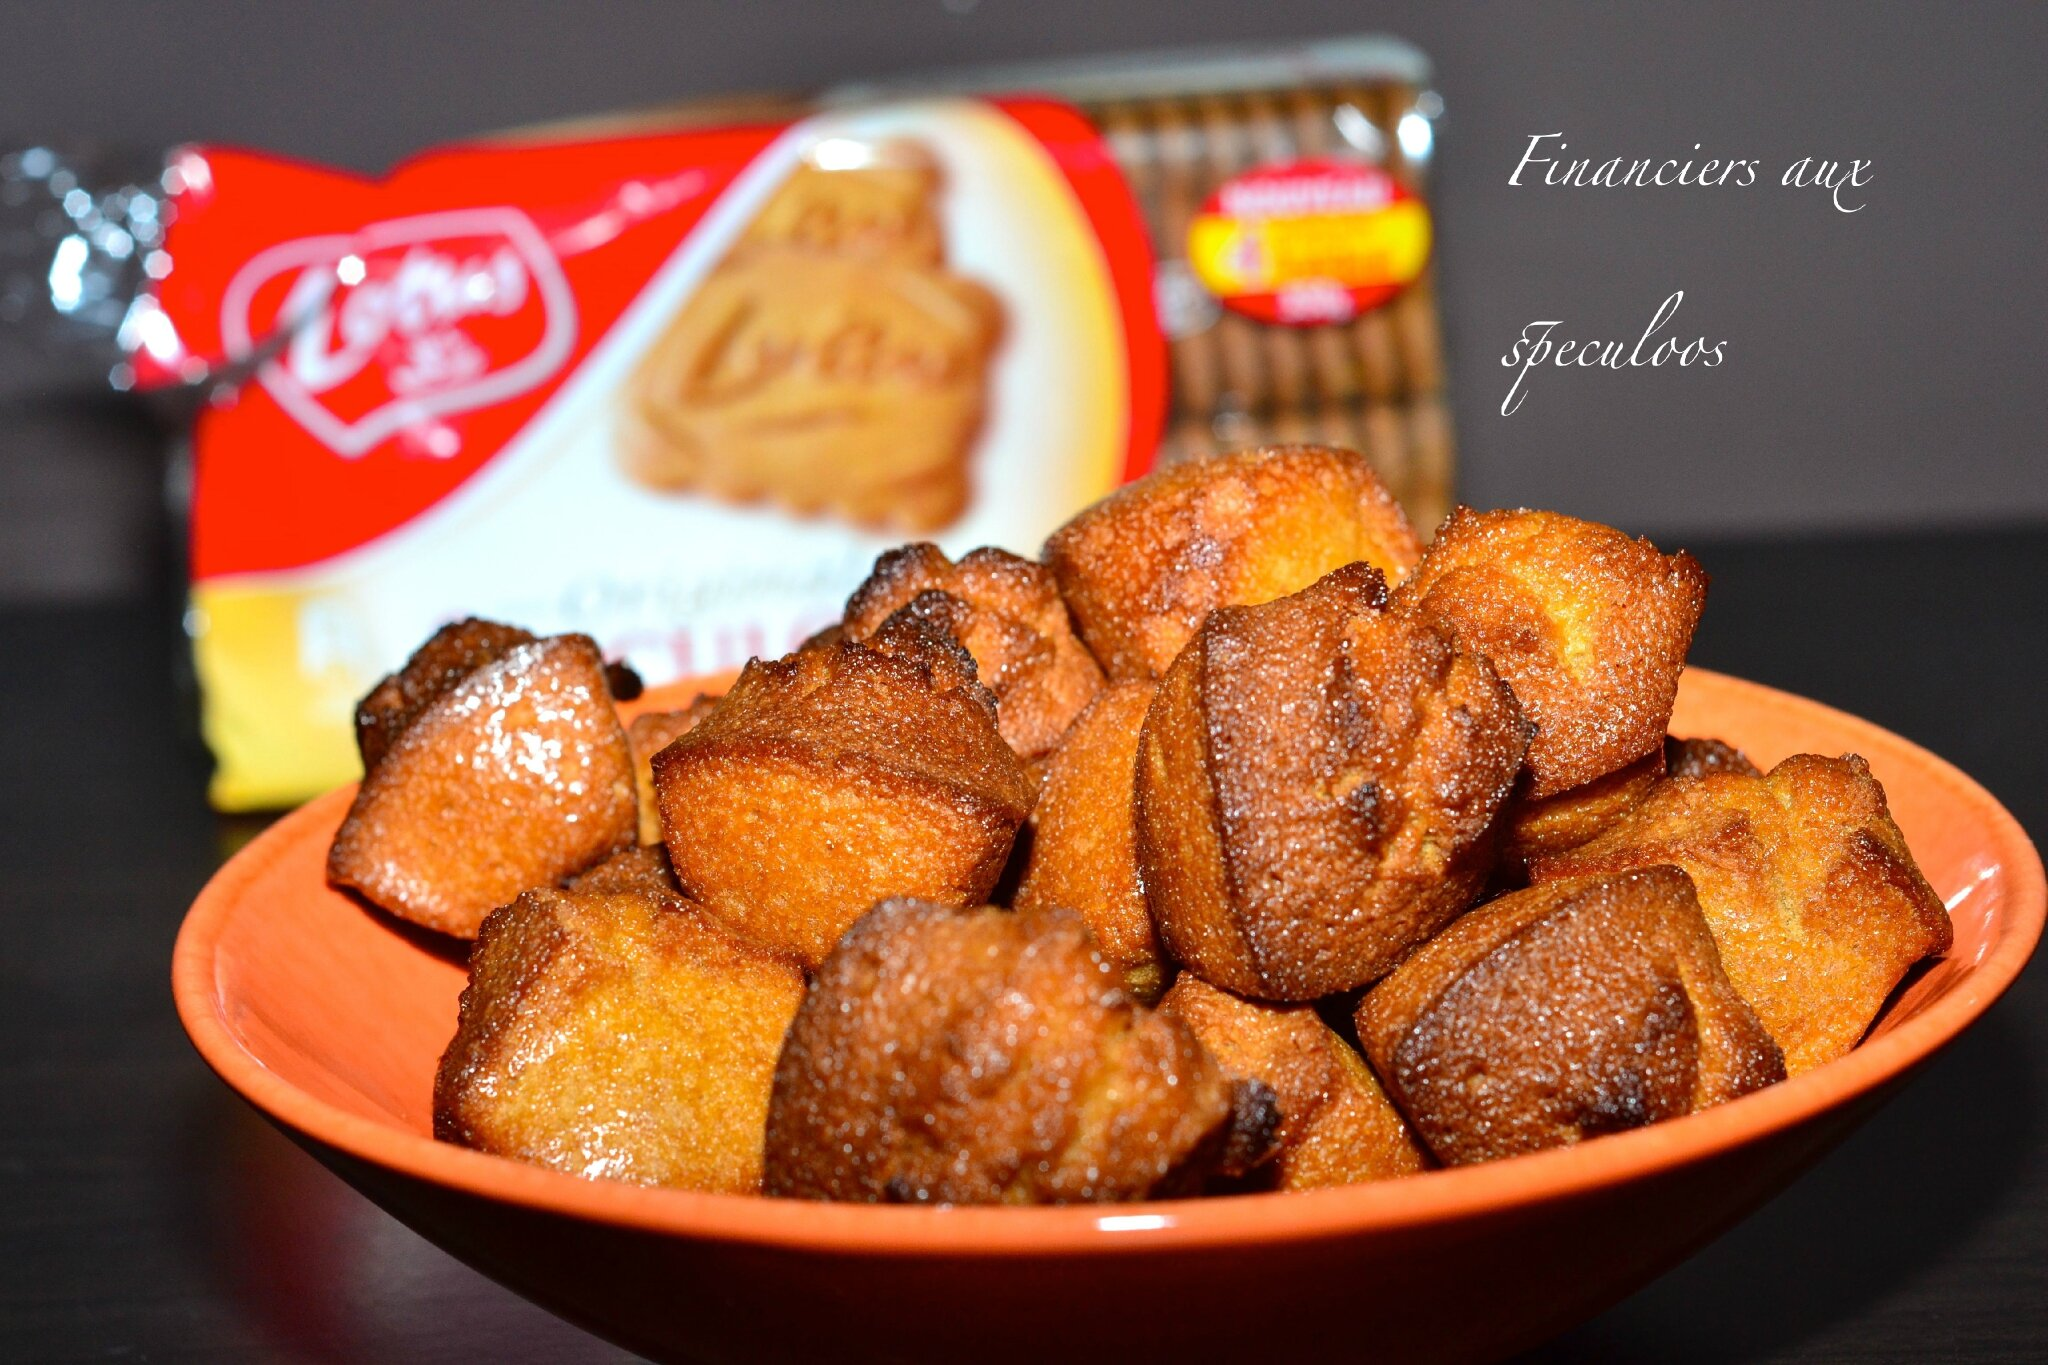 Financiers speculoos